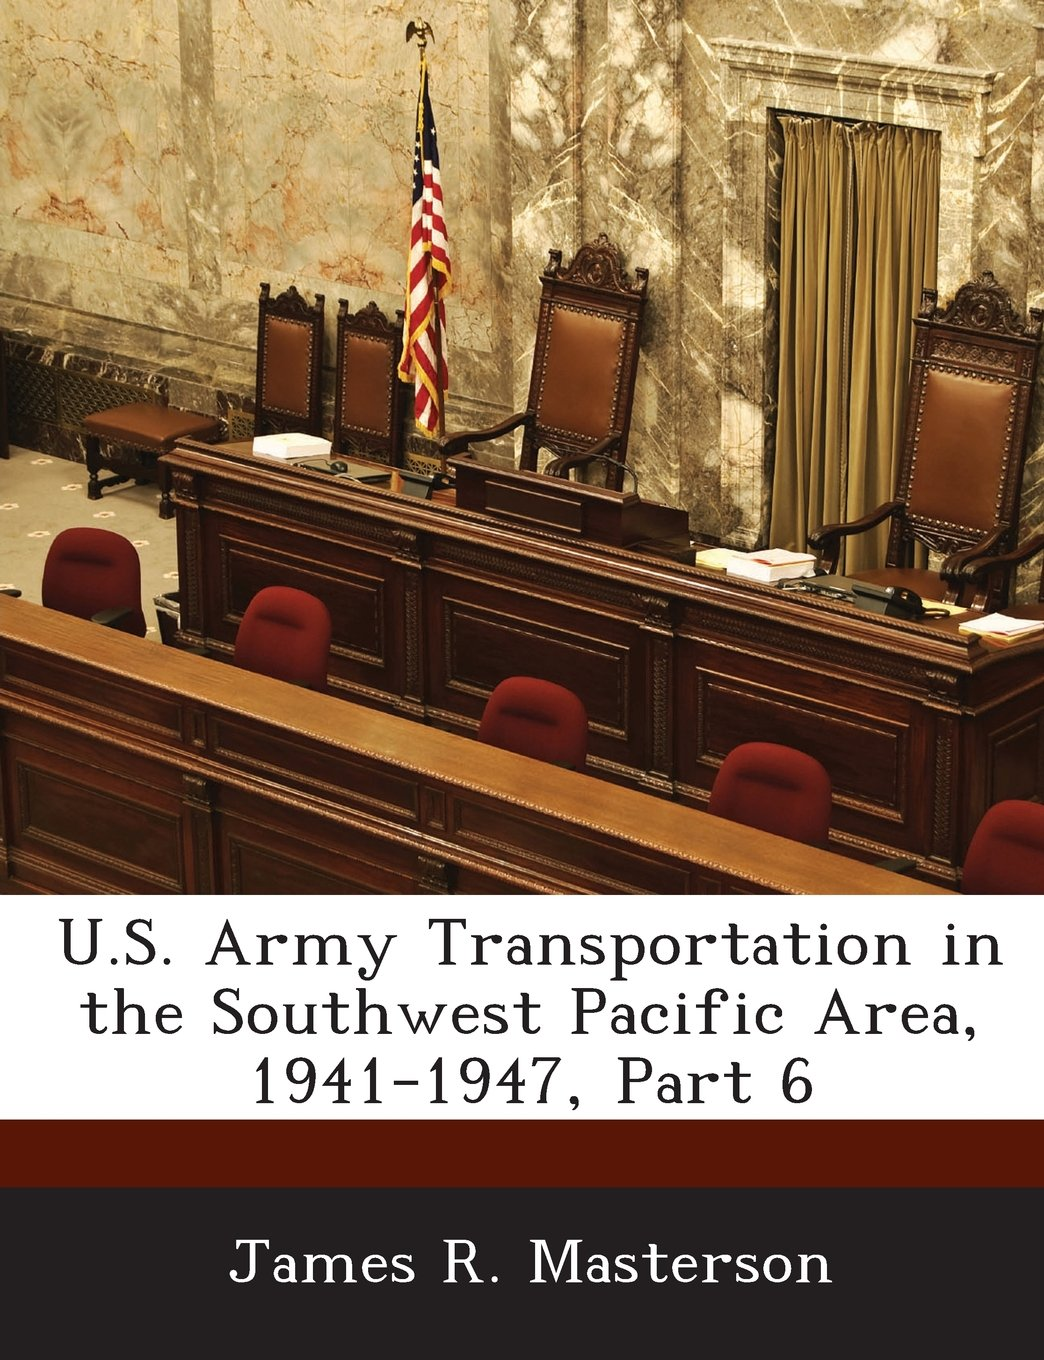 U.S. Army Transportation in the Southwest Pacific Area, 1941-1947, Part 6 Text fb2 ebook